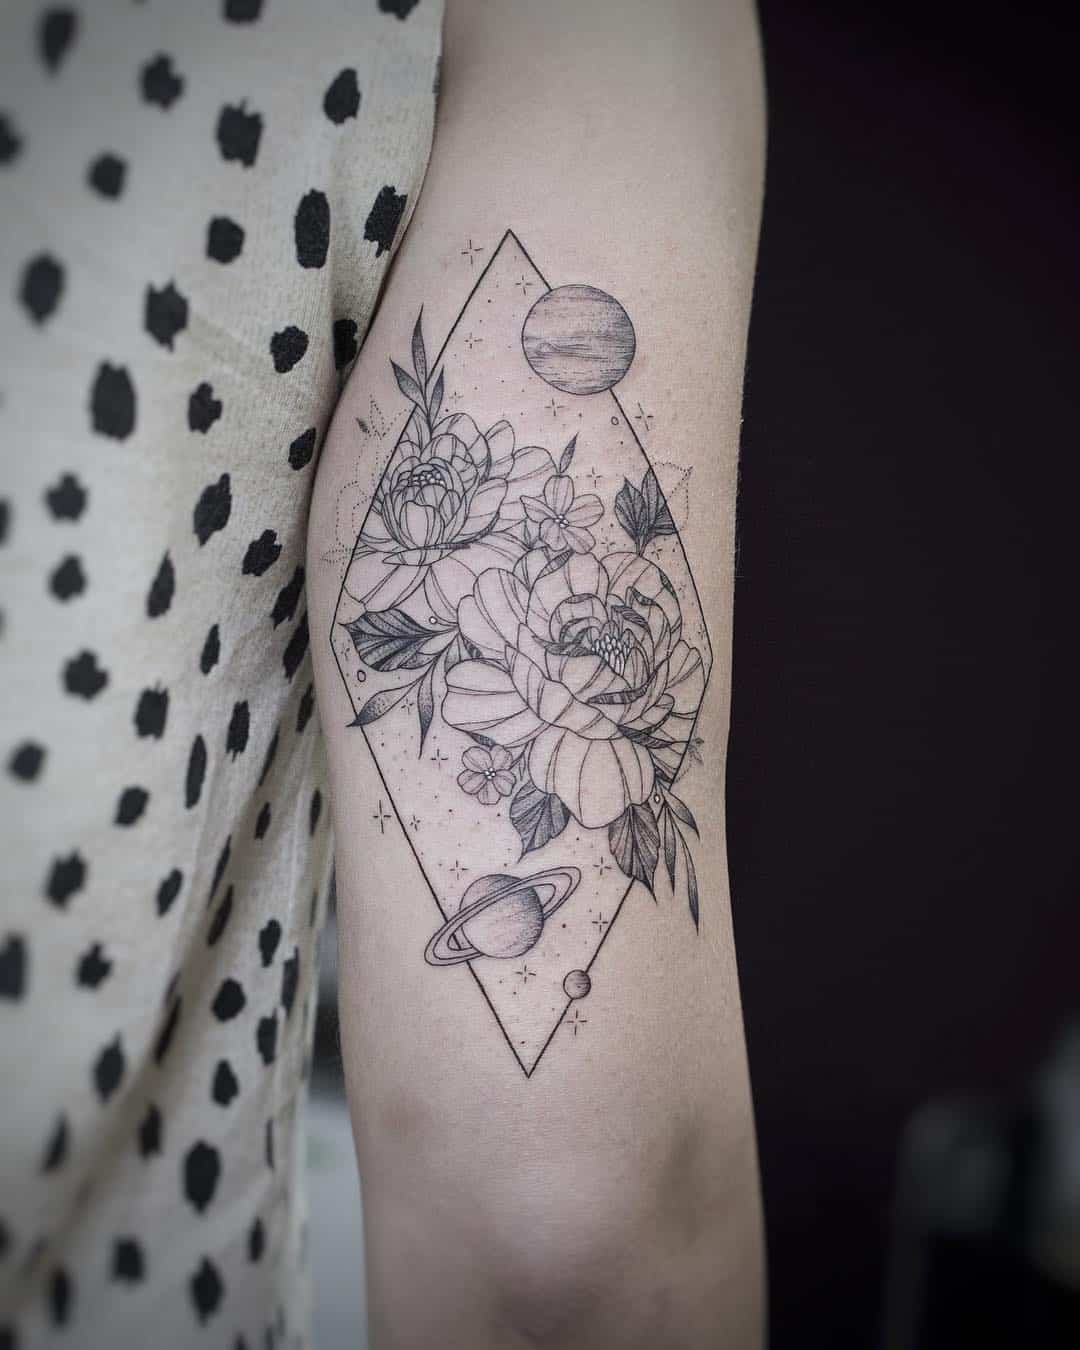 Fine line tattoo by Jessica Joy